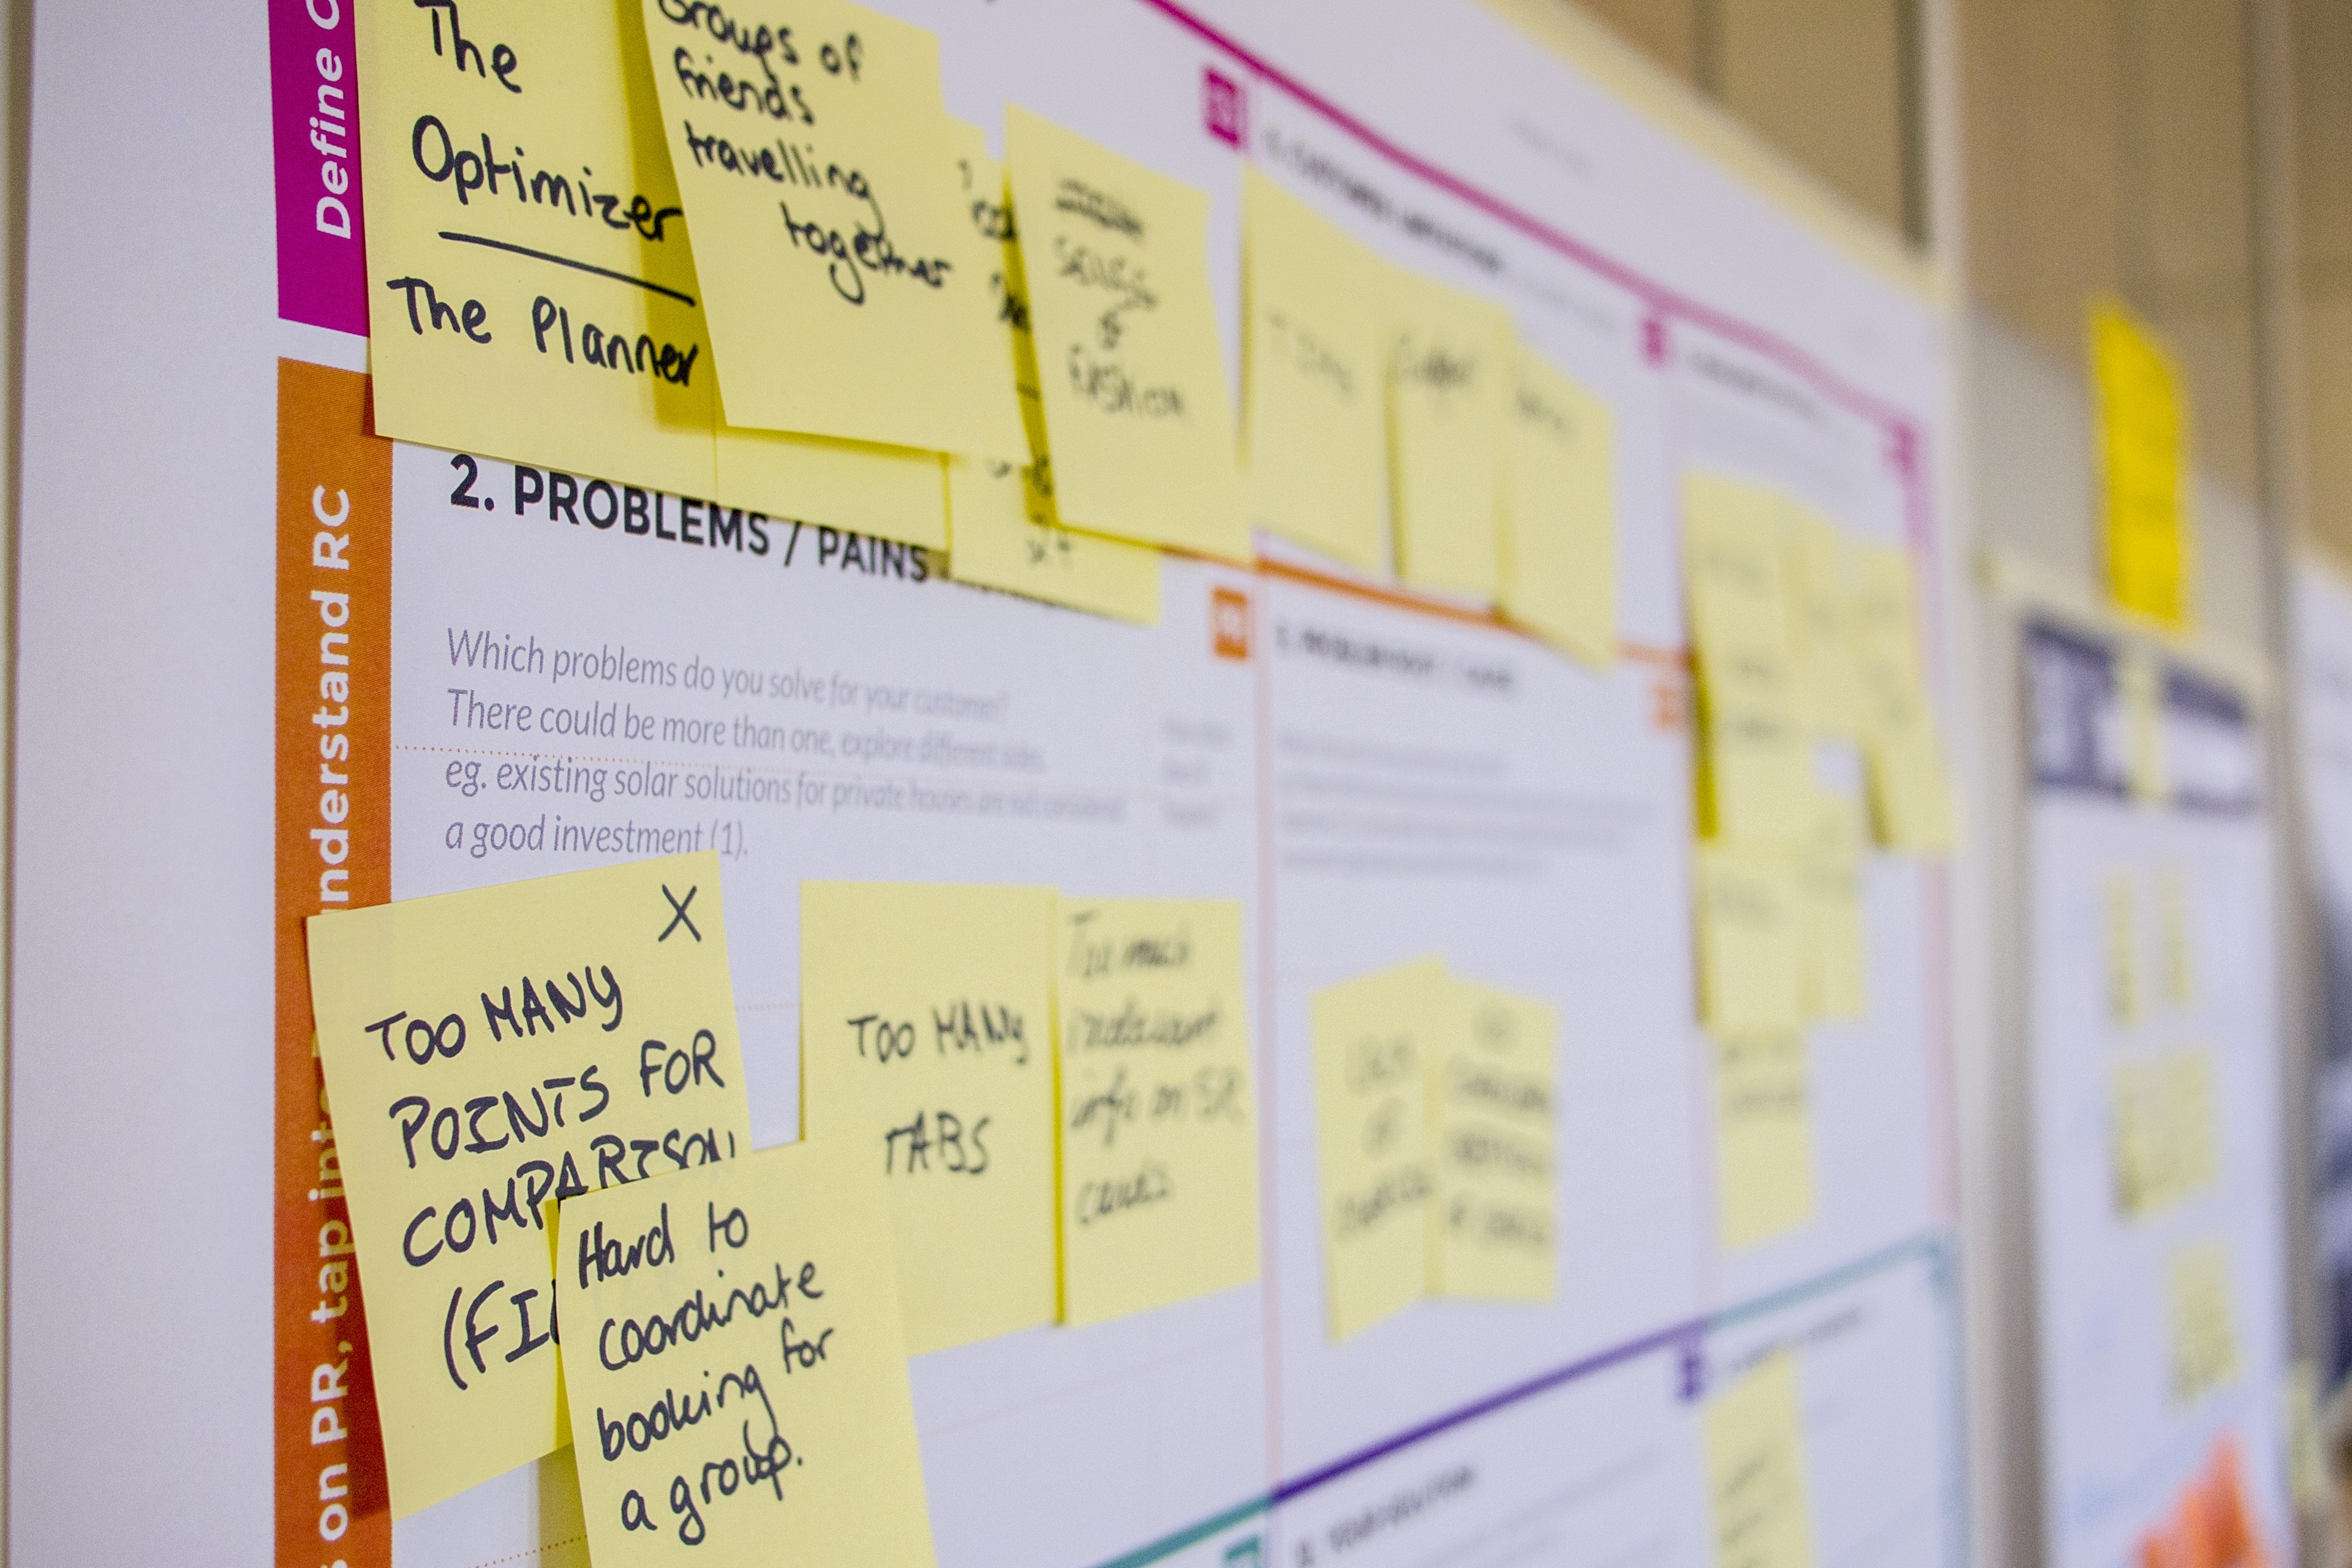 A project planning board with yellow post-it notes showing an agile project planning and estimation session.